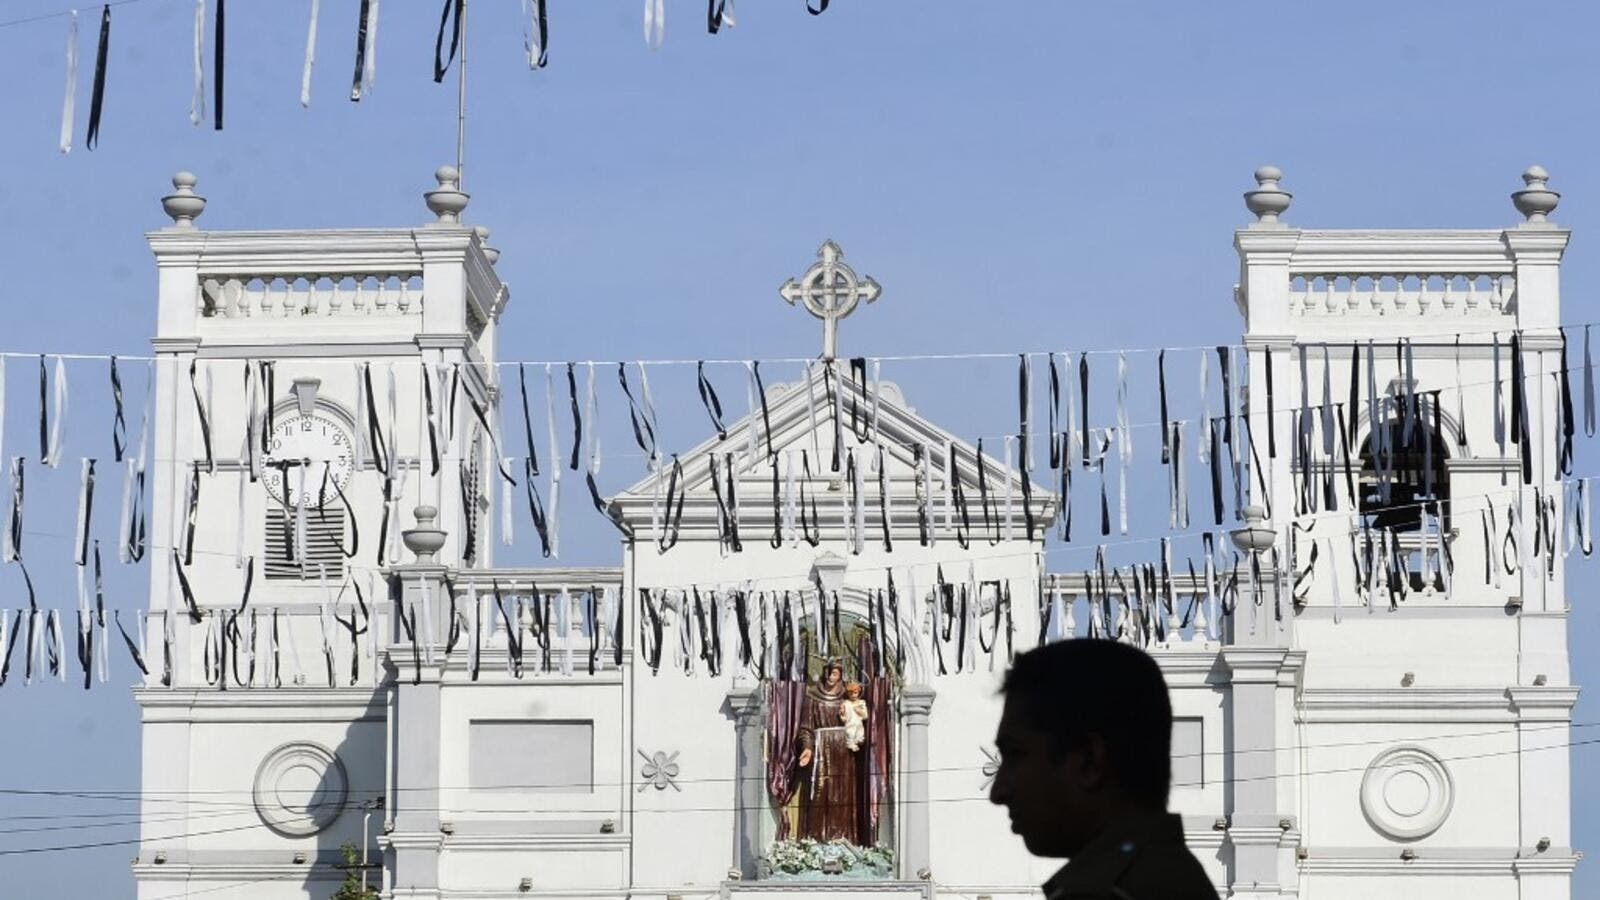 Sri Lanka fell silent for three minutes April 23 on a day of national mourning to honour more than 300 people killed in suicide bomb blasts that have been blamed on a local Islamist group. (AFP)